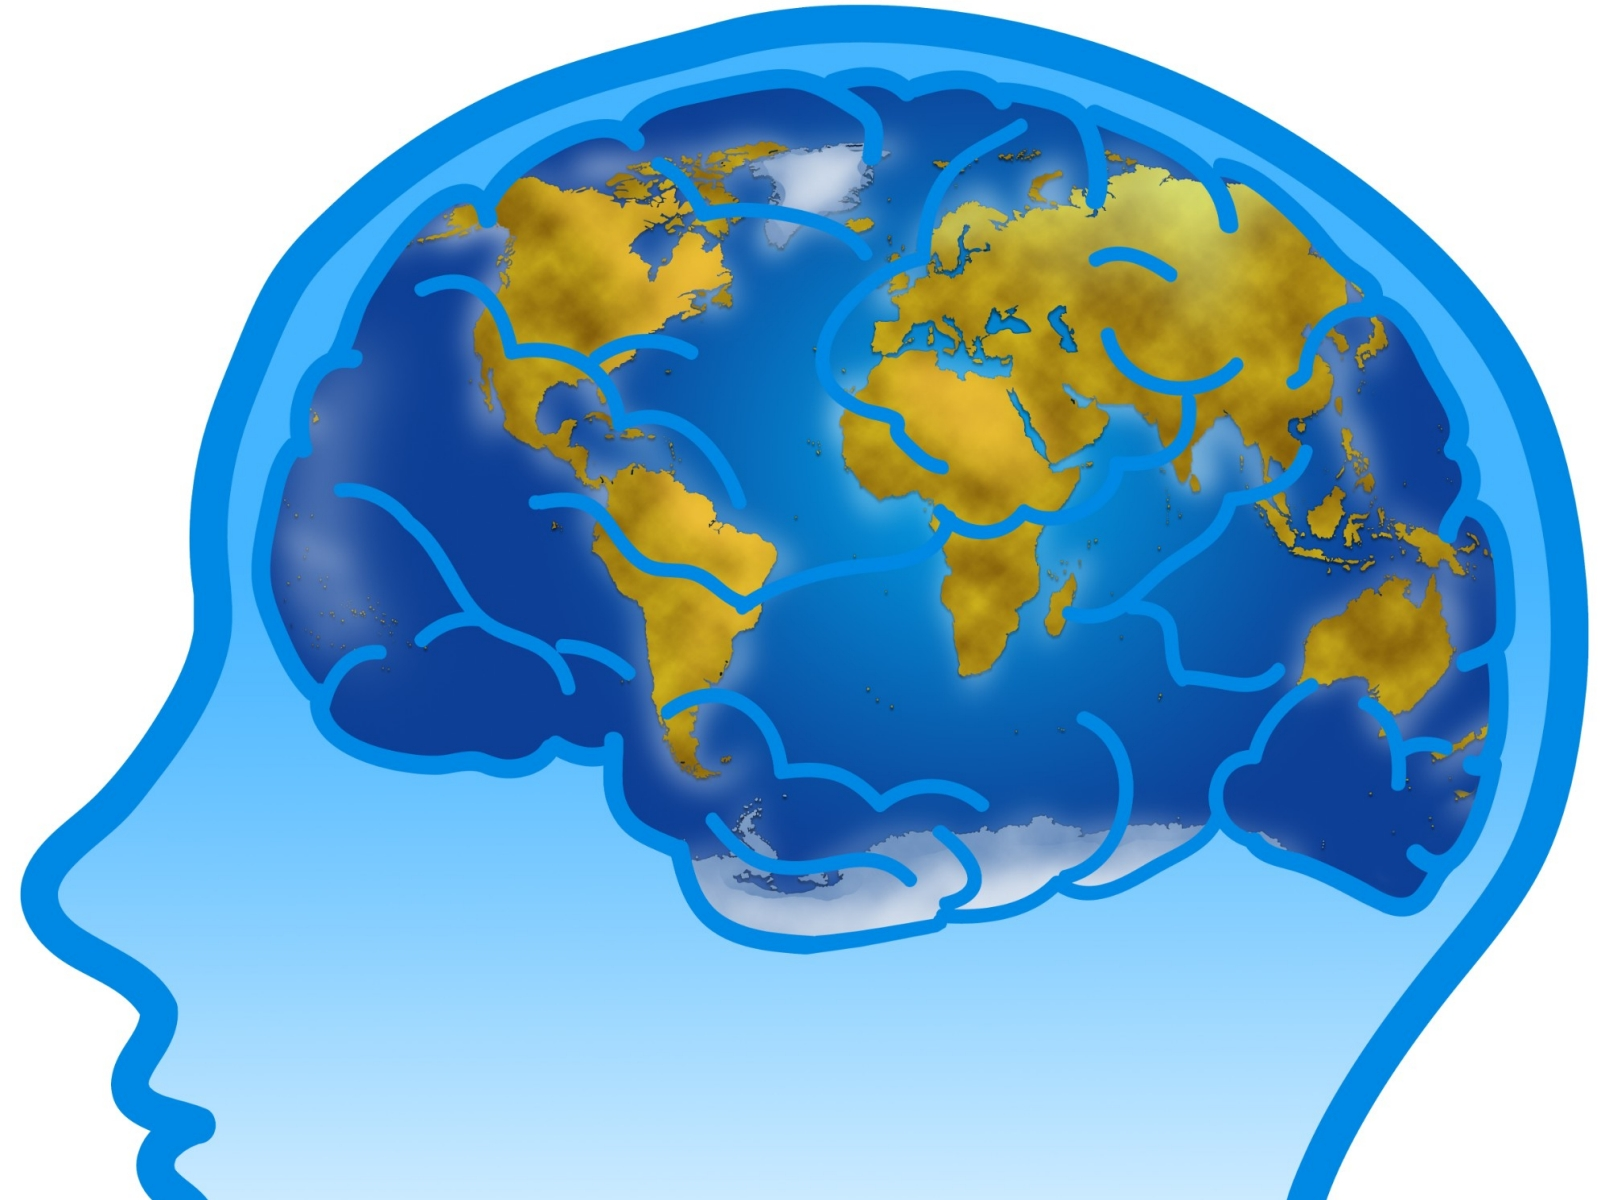 project ecosystem mapping the global mental health